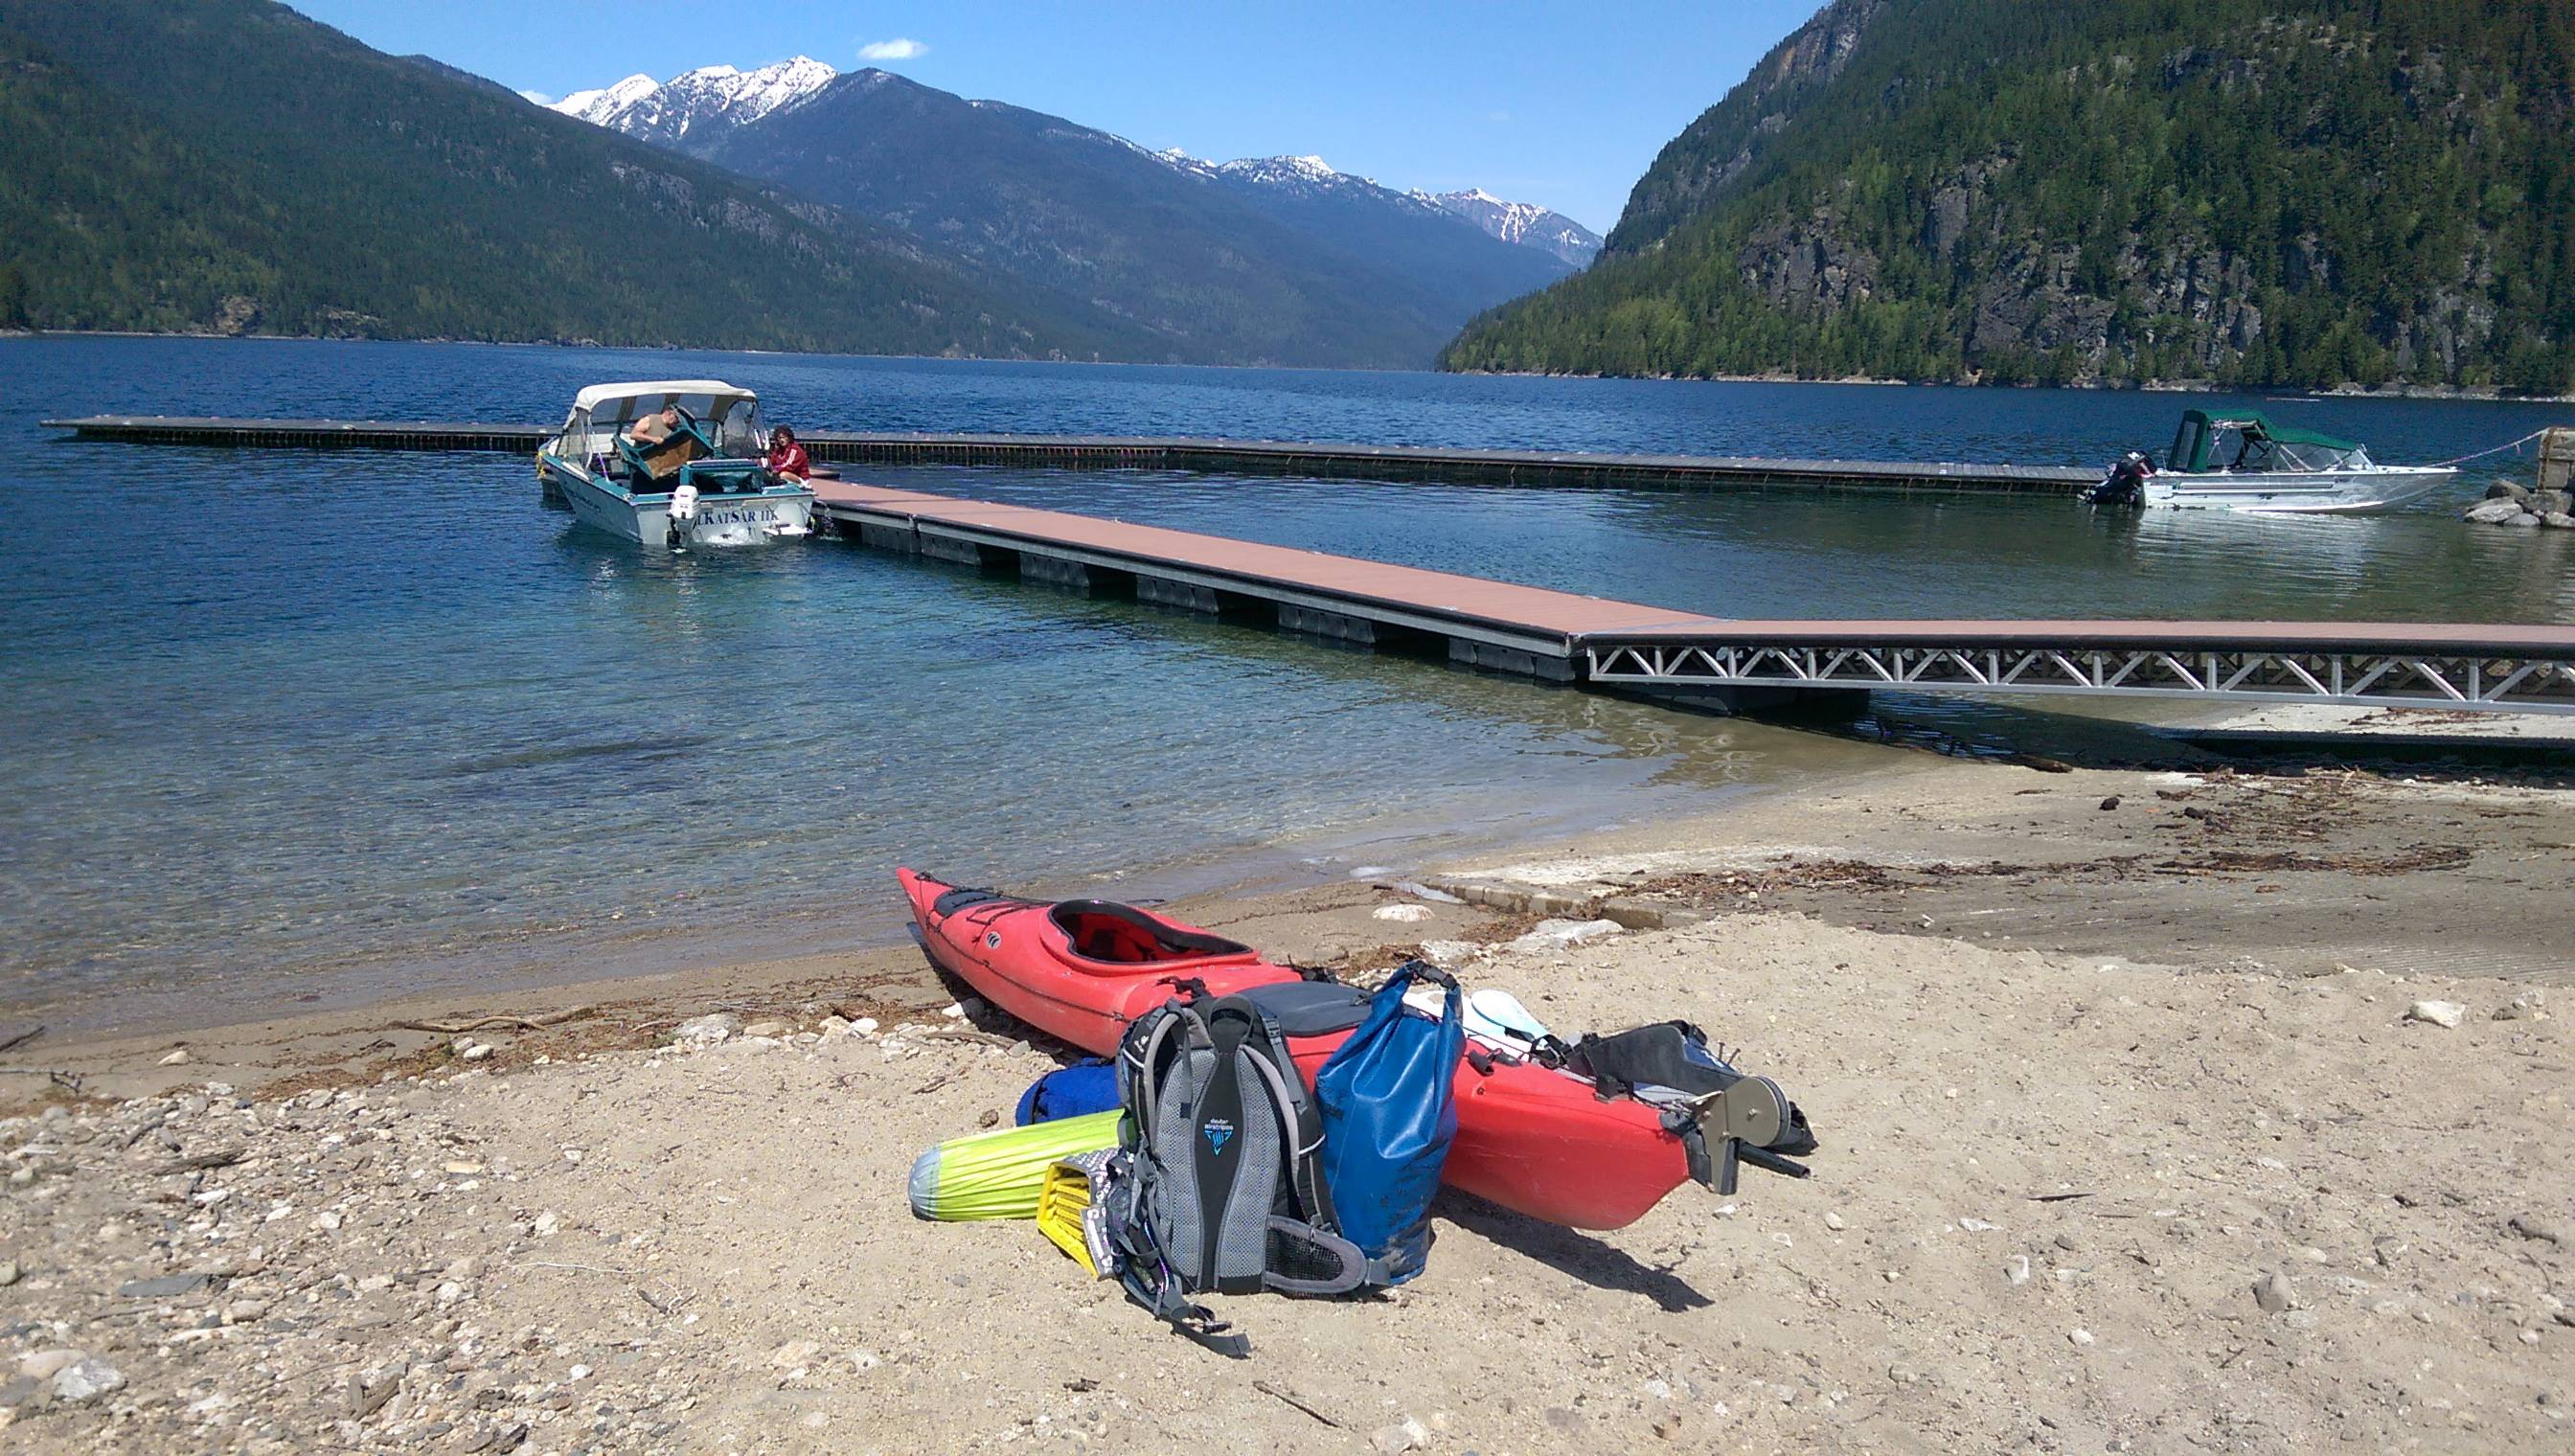 kootney bicycle case Kootenay case weaknesses by: jesse nile, jenna peretti, echo thurston, michelle tilstra by: jesse nile, jenna peretti, echo thurston, and michelle tilstra questions.